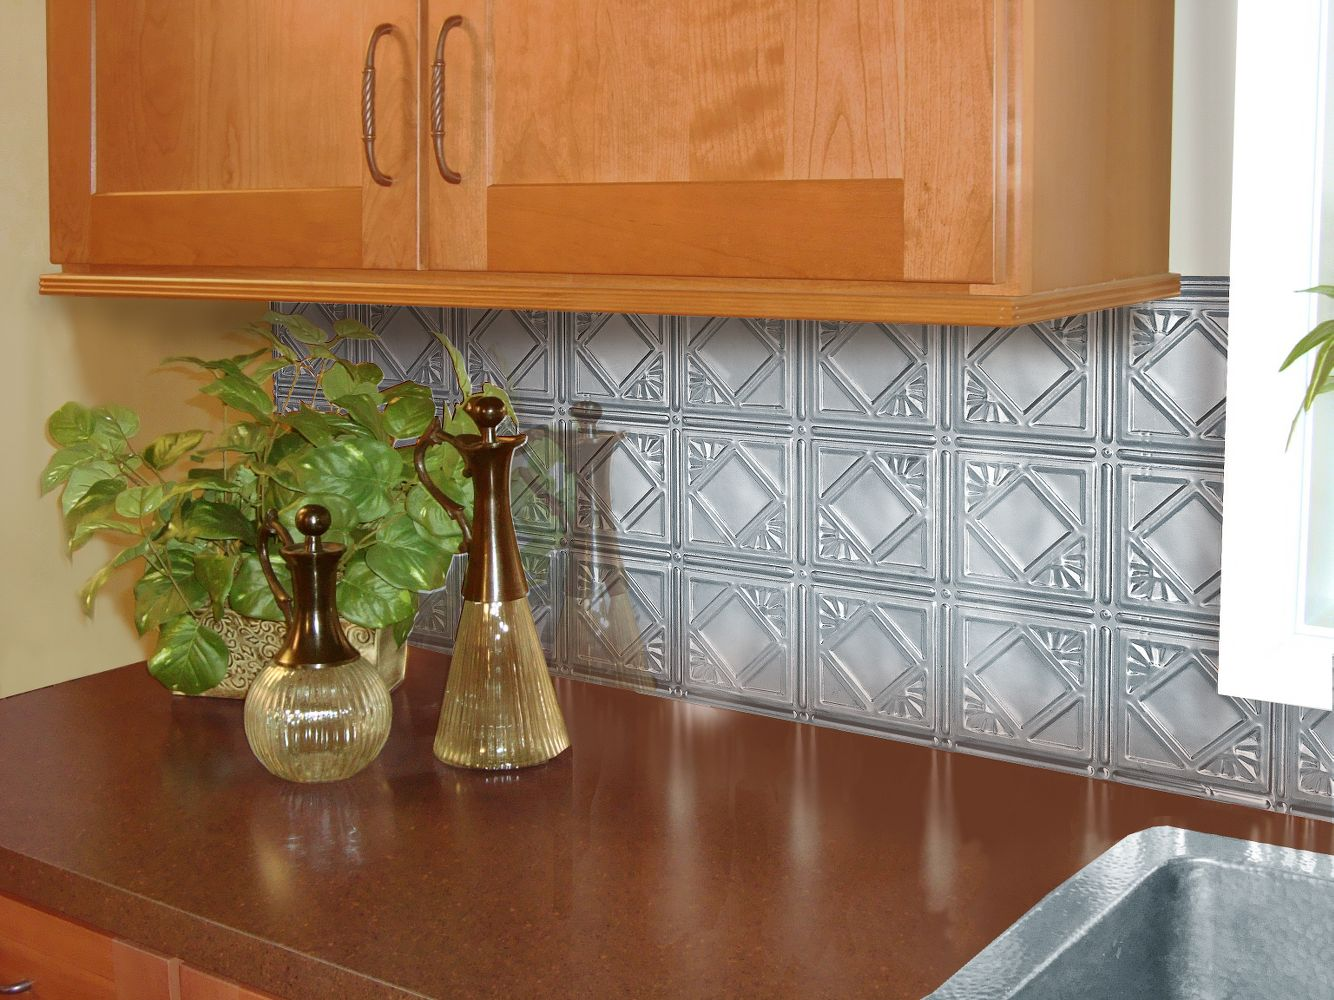 Ceiling Tiles For Kitchen Kitchen Ceiling And Kitchen Backsplash From Armstrong